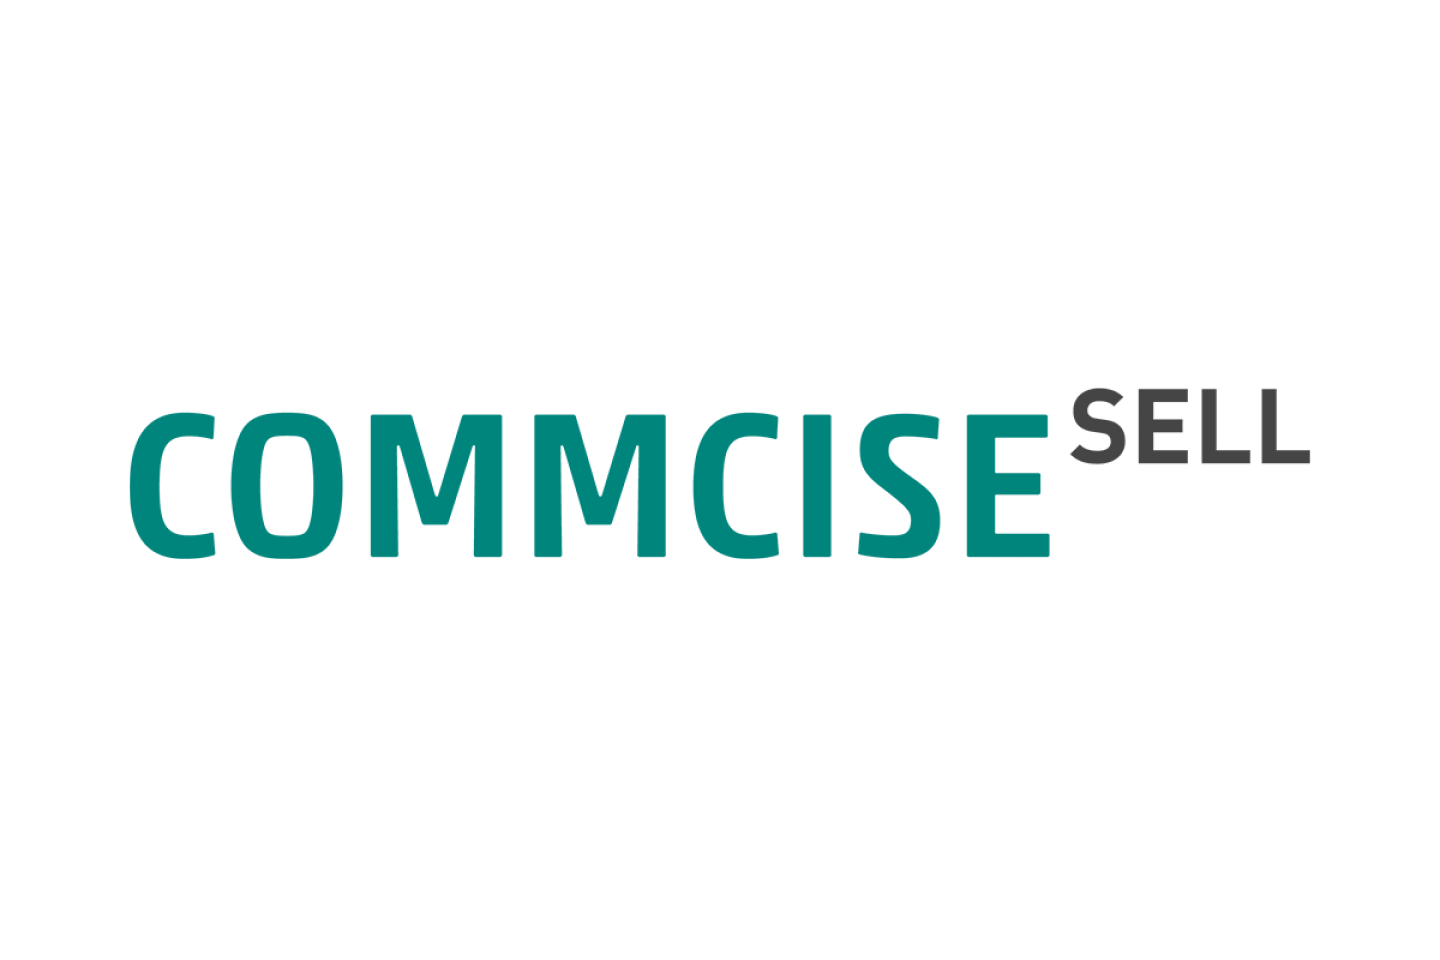 Commcise SELL